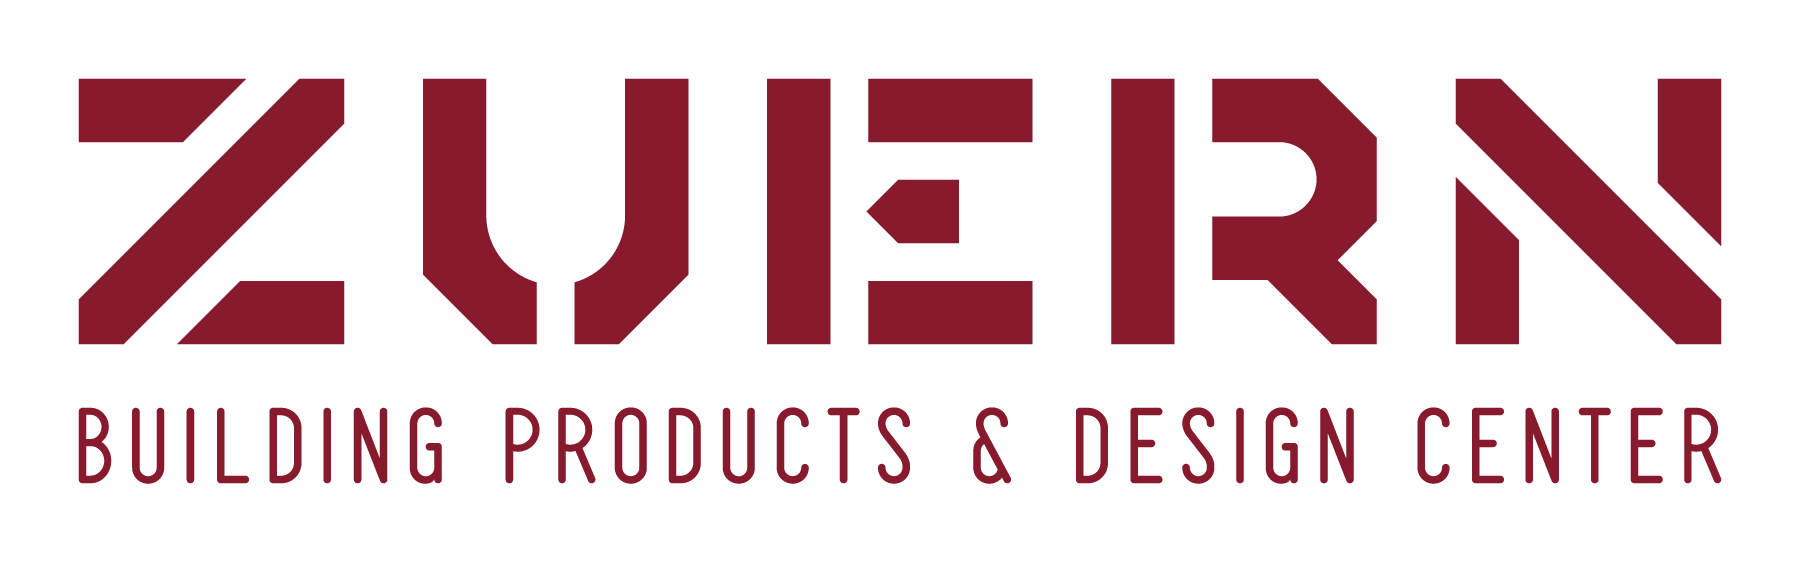 Zuern Building Products logo